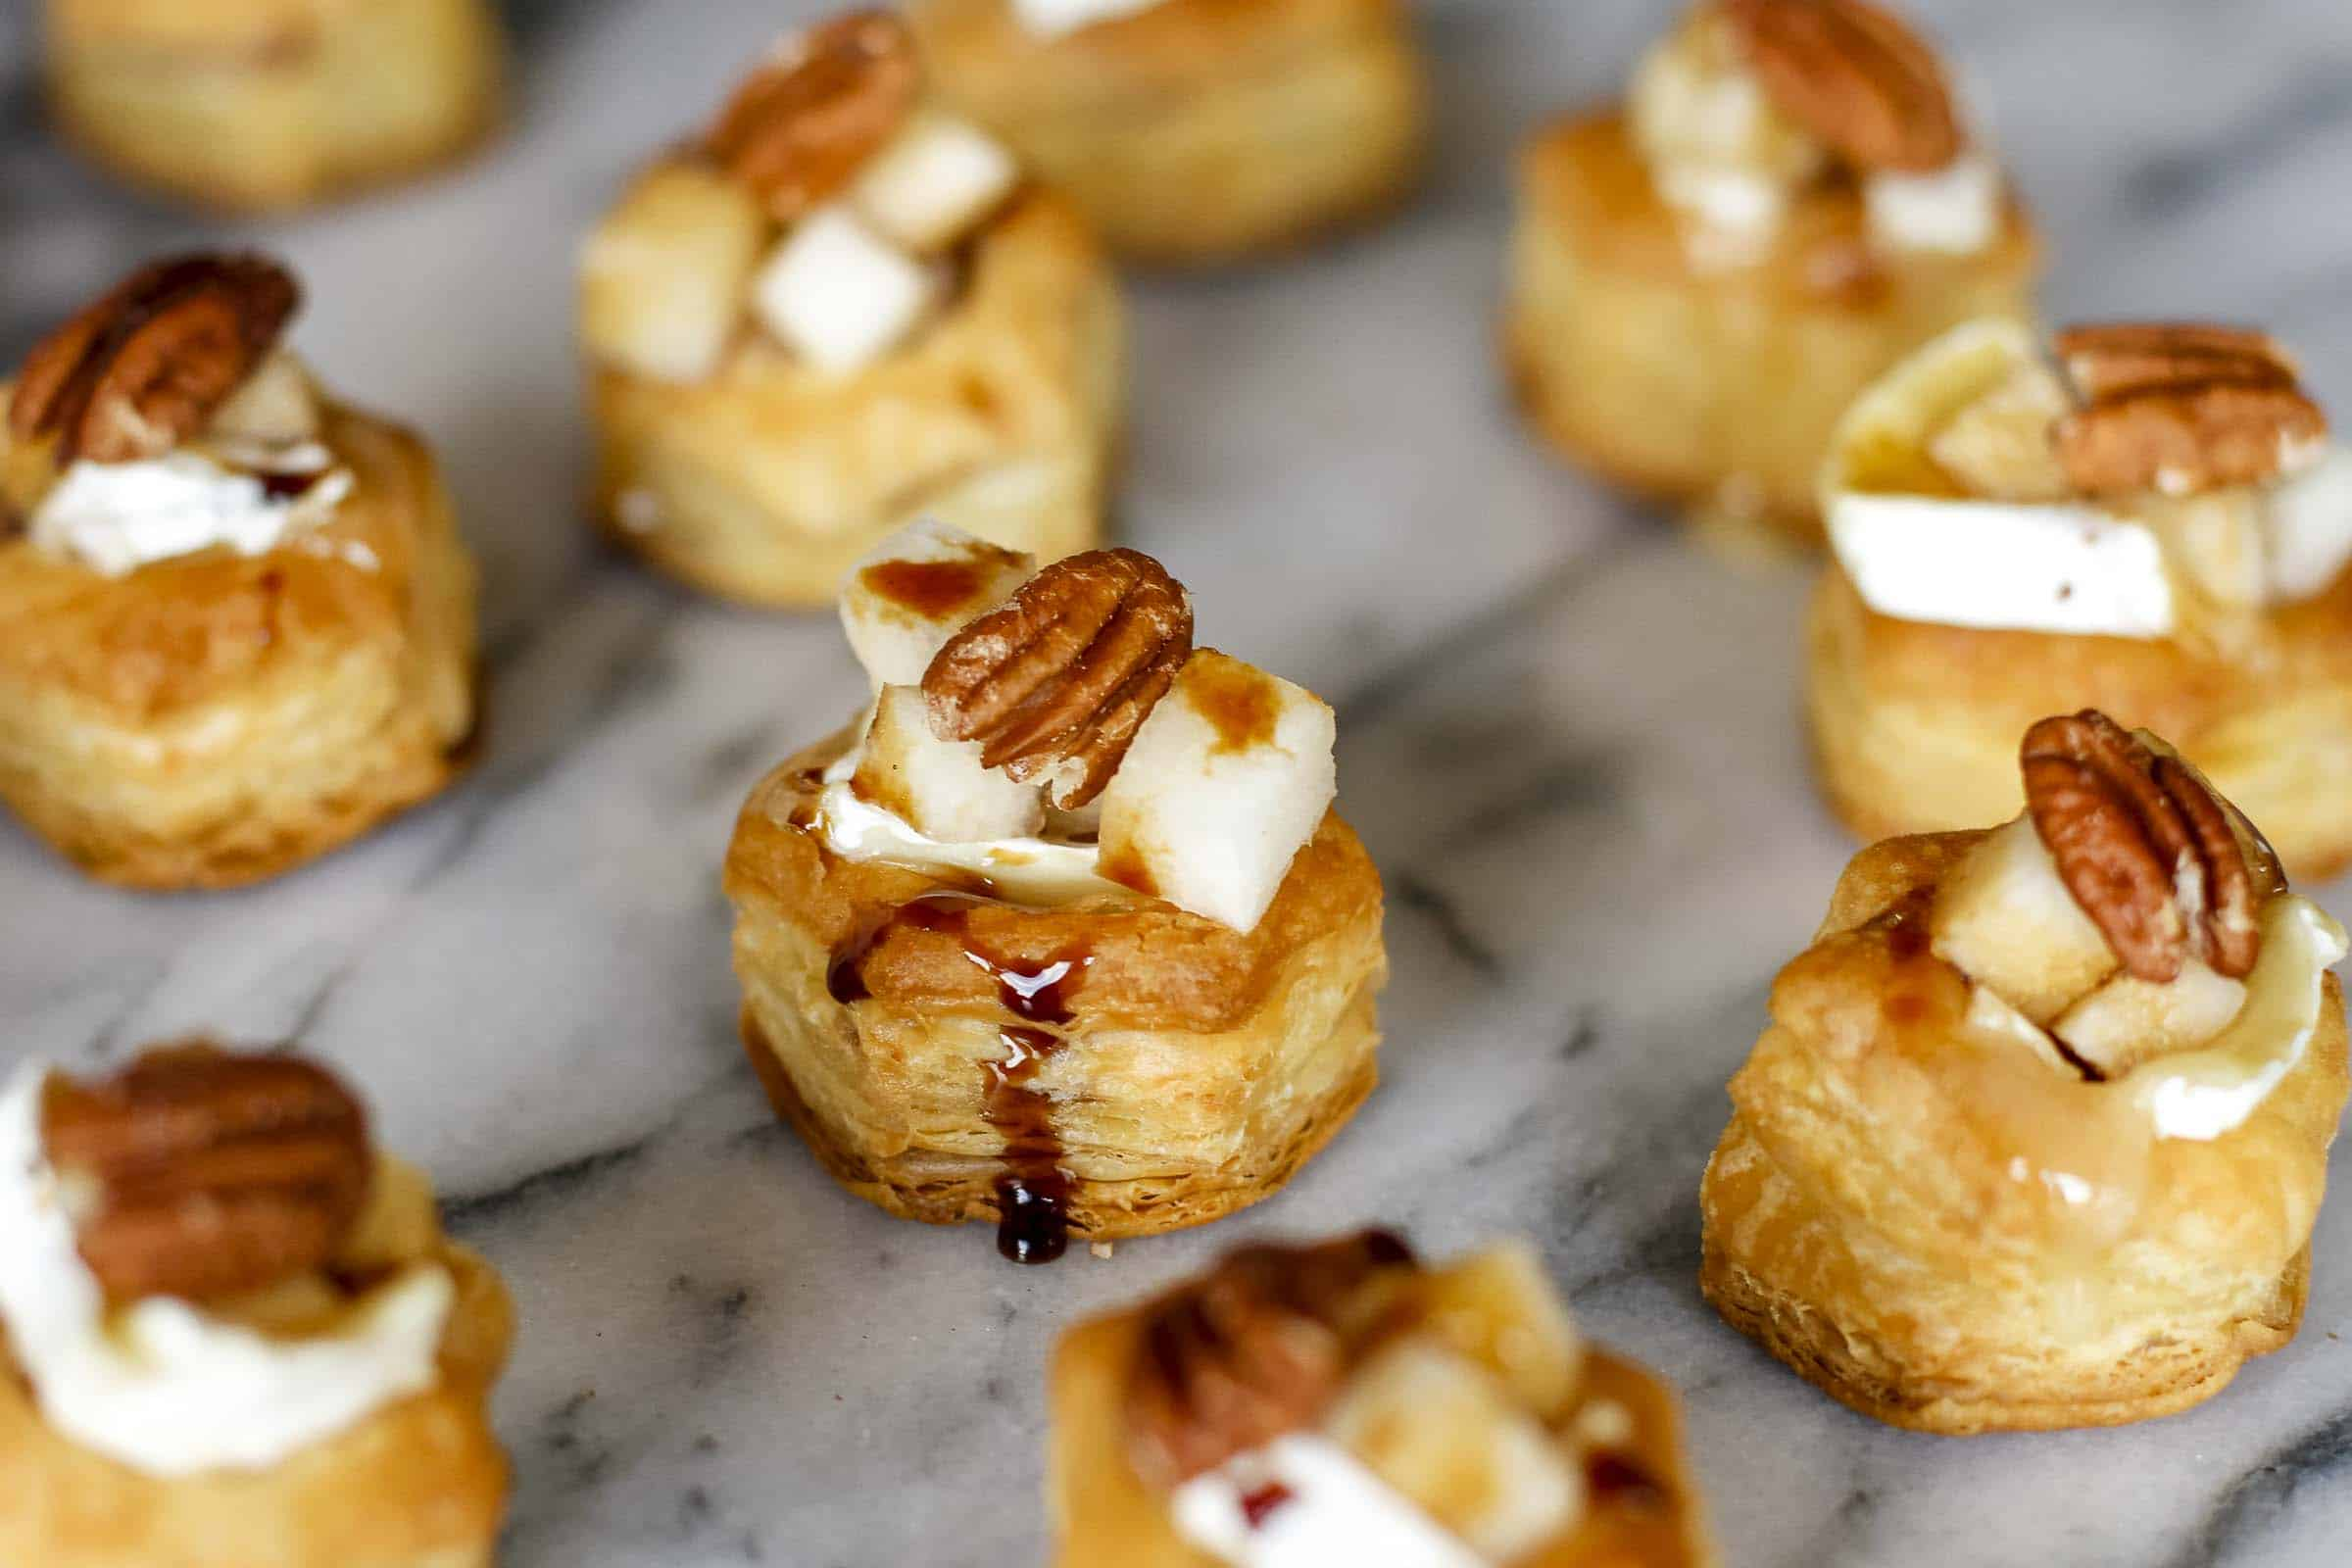 Baked Brie Bites -- these delicious baked brie bites are topped with diced pears, toasted walnuts and a drizzle of balsamic reduction for a fabulous holiday appetizer! | via @unsophisticook on unsophisticook.com